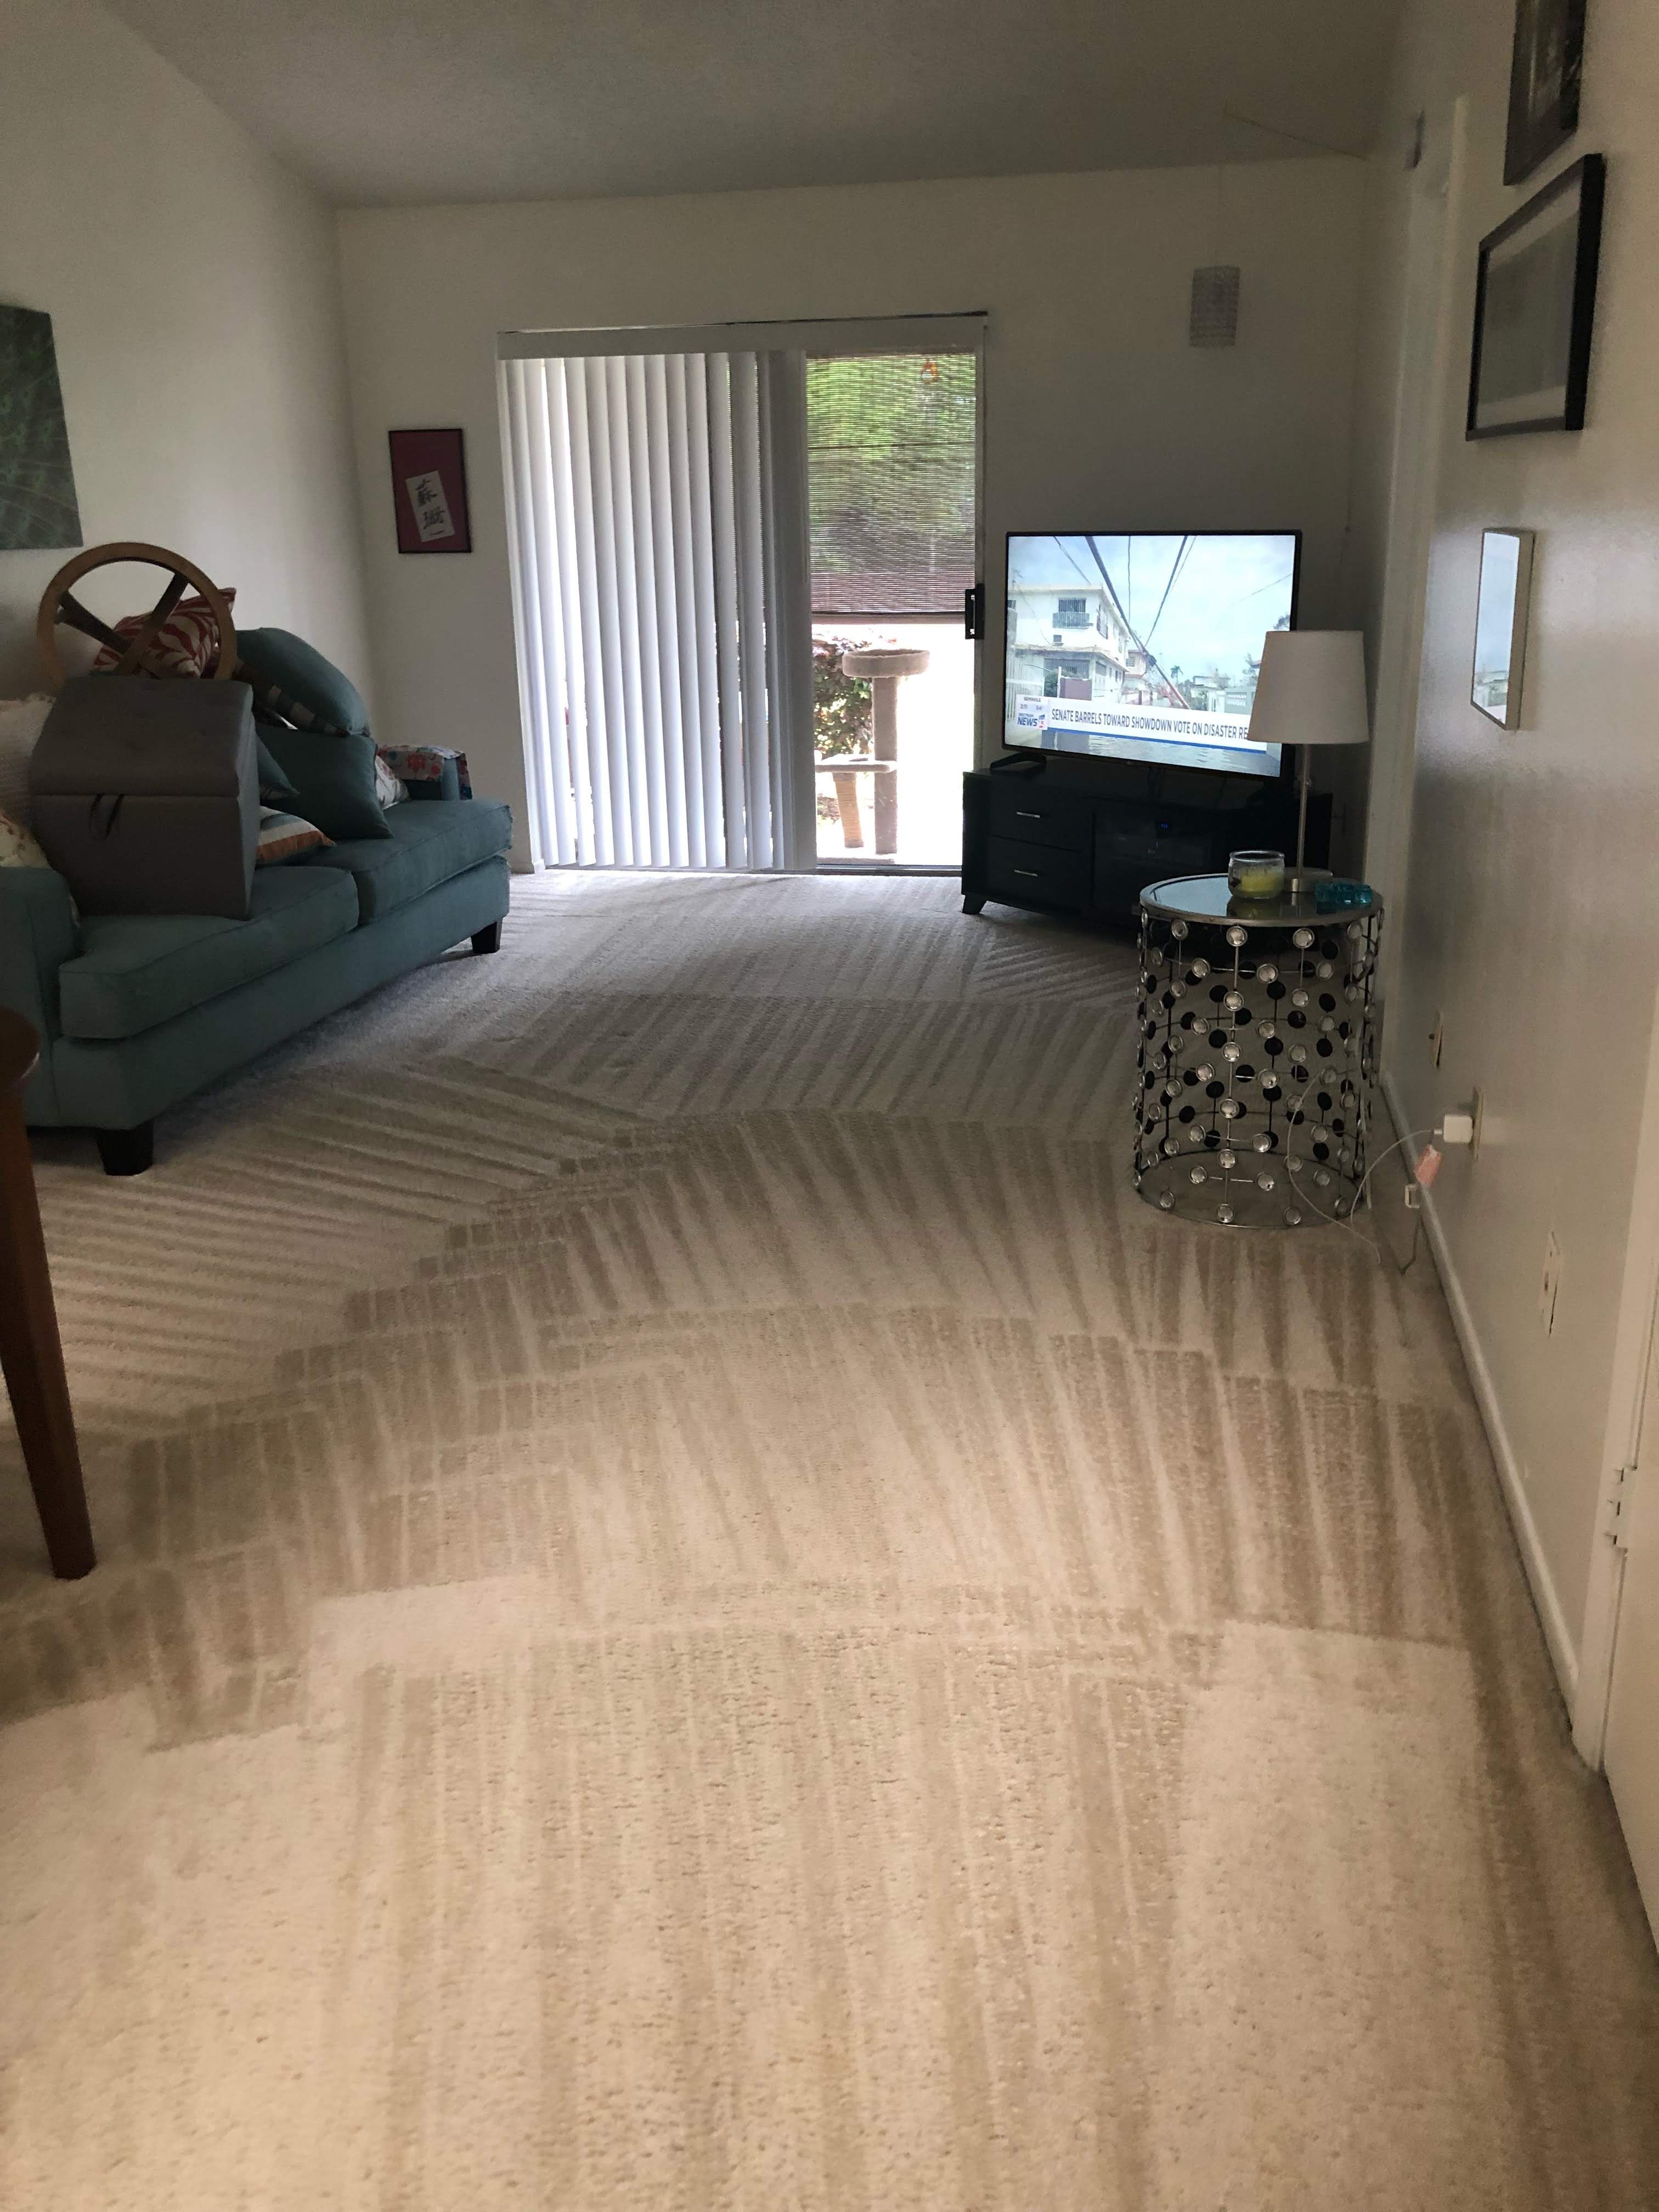 We Provide A Variety Of Services In A Variety Of Areas If You Re Looking For Carpet Cleaning Windermere Services W How To Clean Carpet Windermere New Carpet